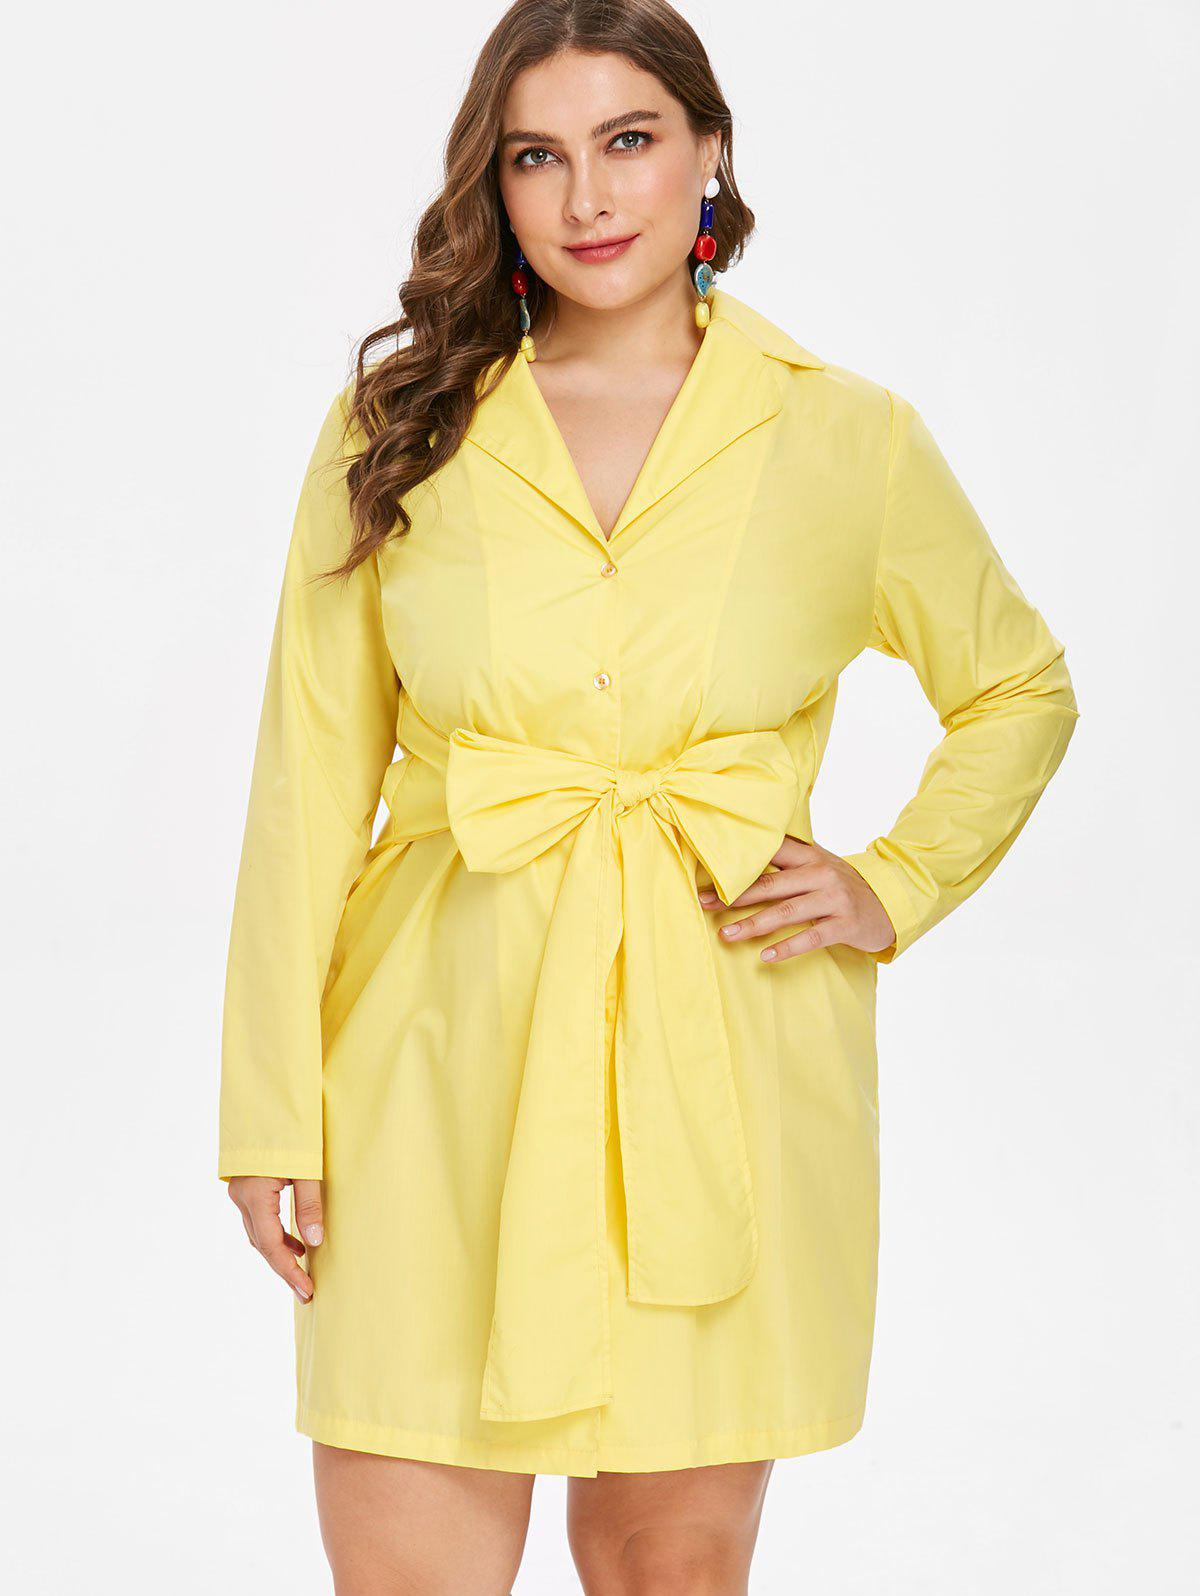 fff85c2a1fc 27% OFF  Plus Size Bow Tie Shirt Dress